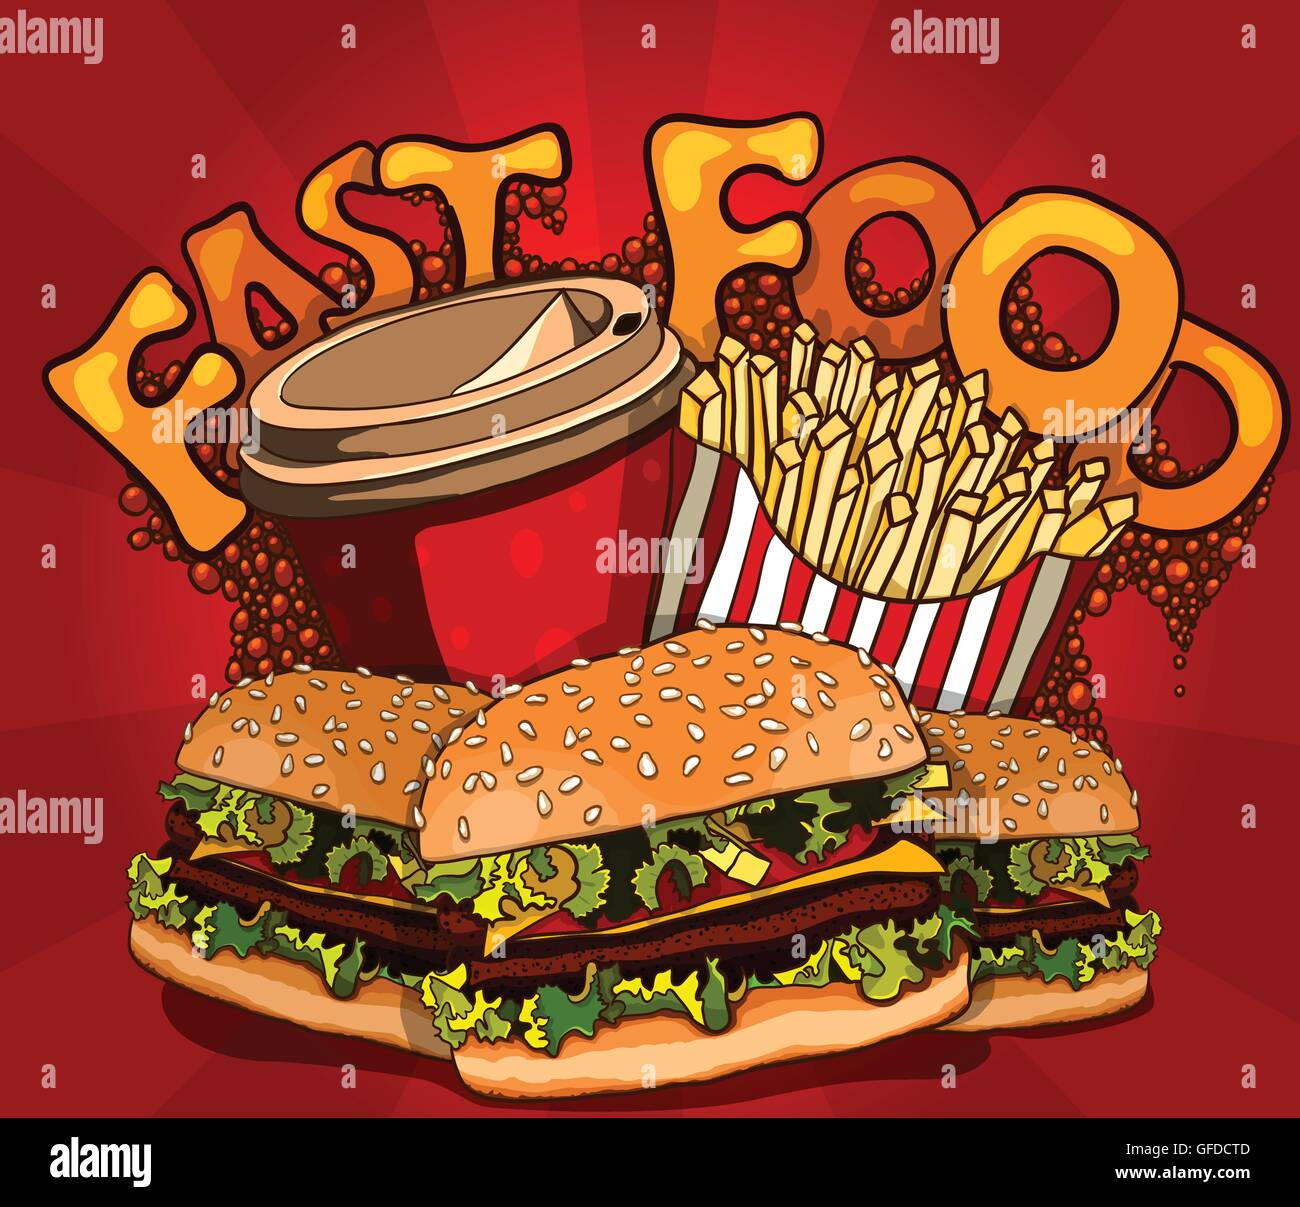 banner with fast food with cola, hamburger and fries - Stock Vector